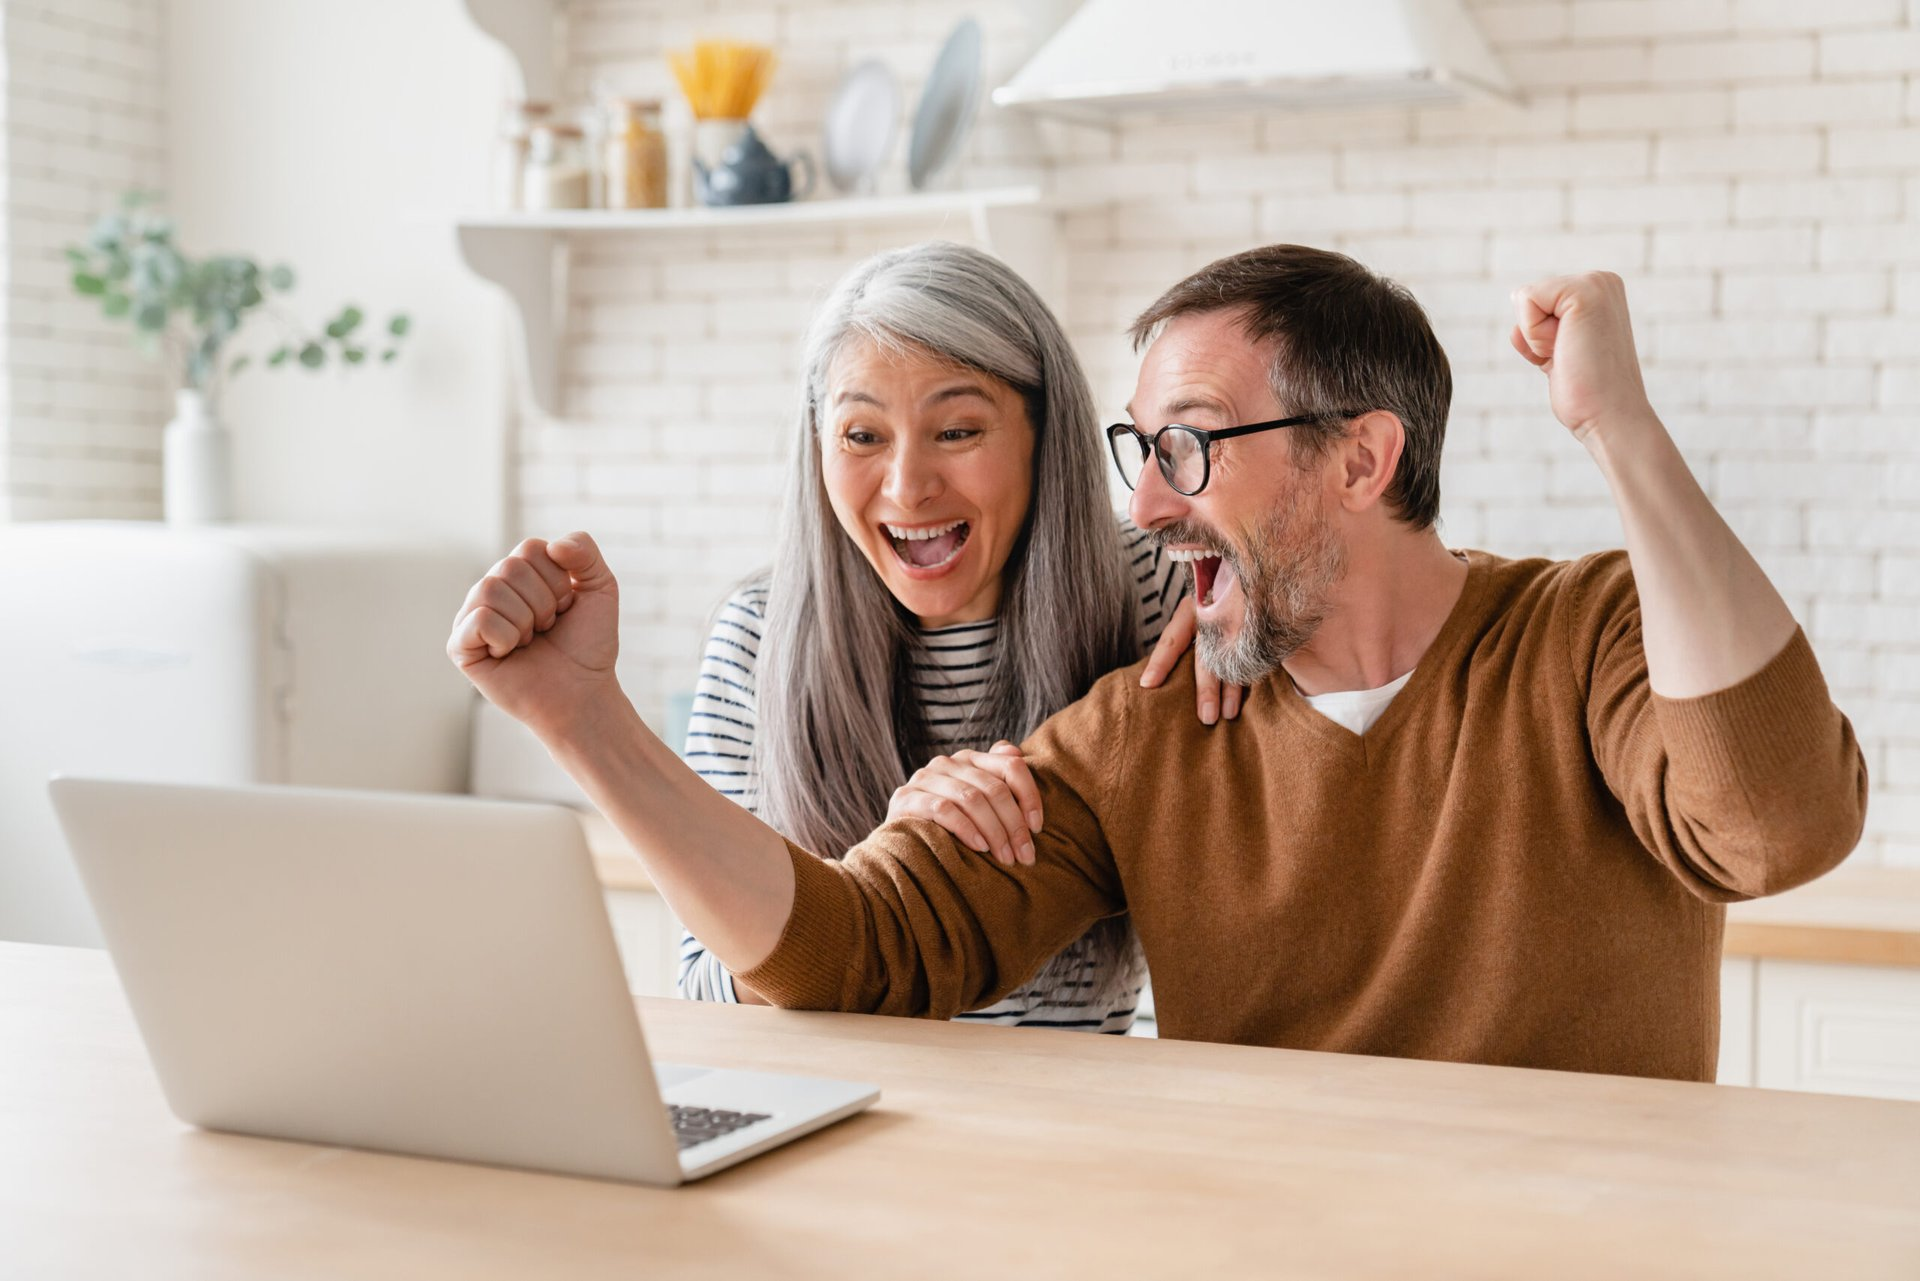 Excited homeowners on a laptop